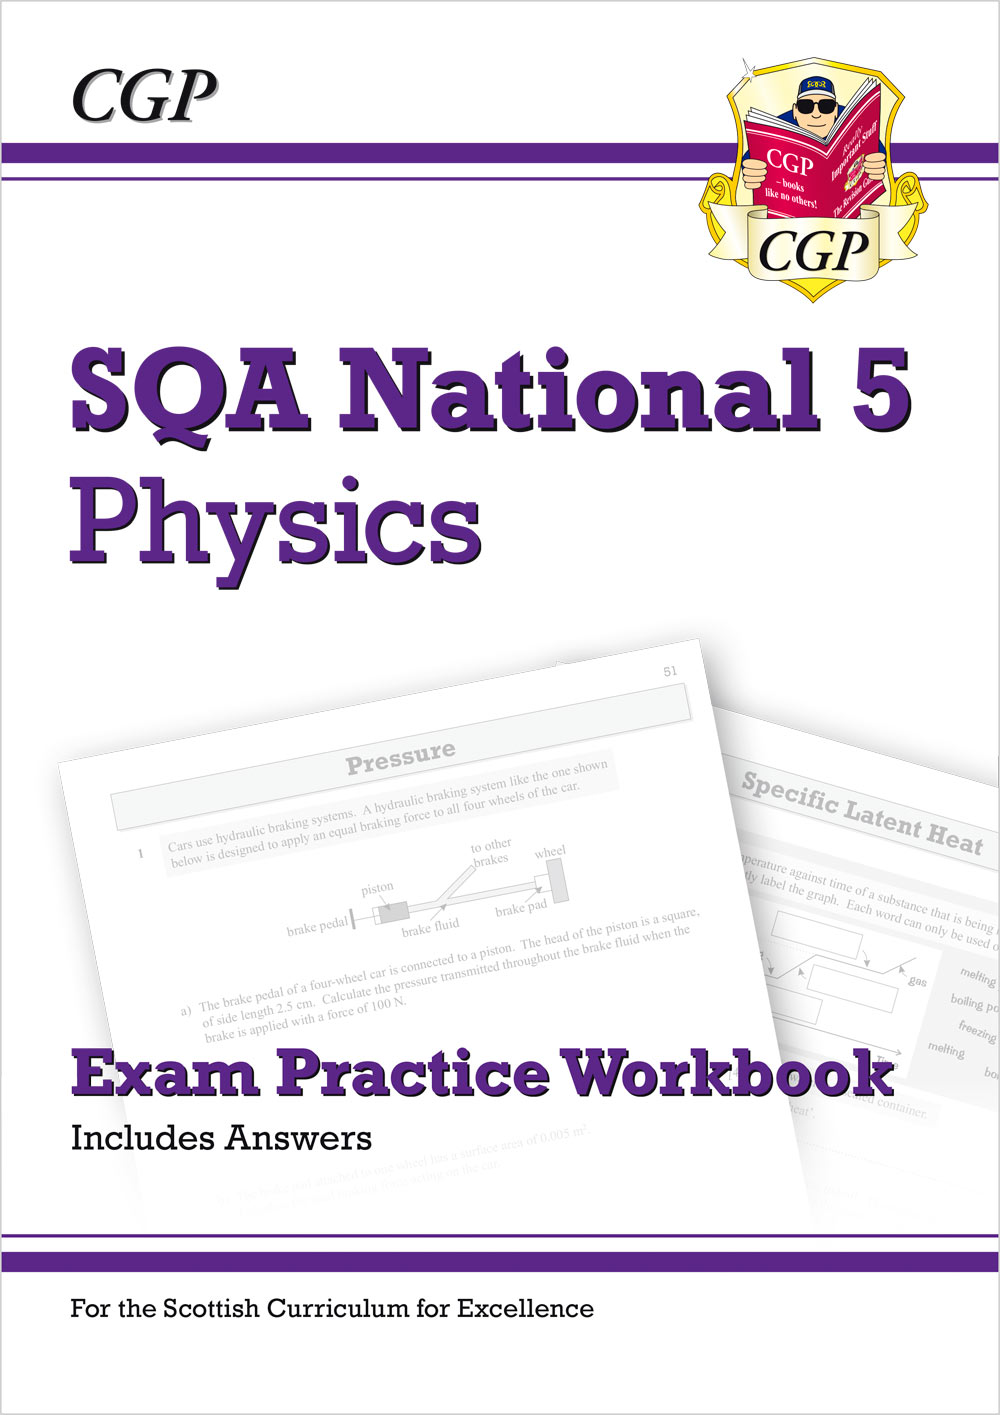 PZQ41 - National 5 Physics: SQA Exam Practice Workbook - includes Answers